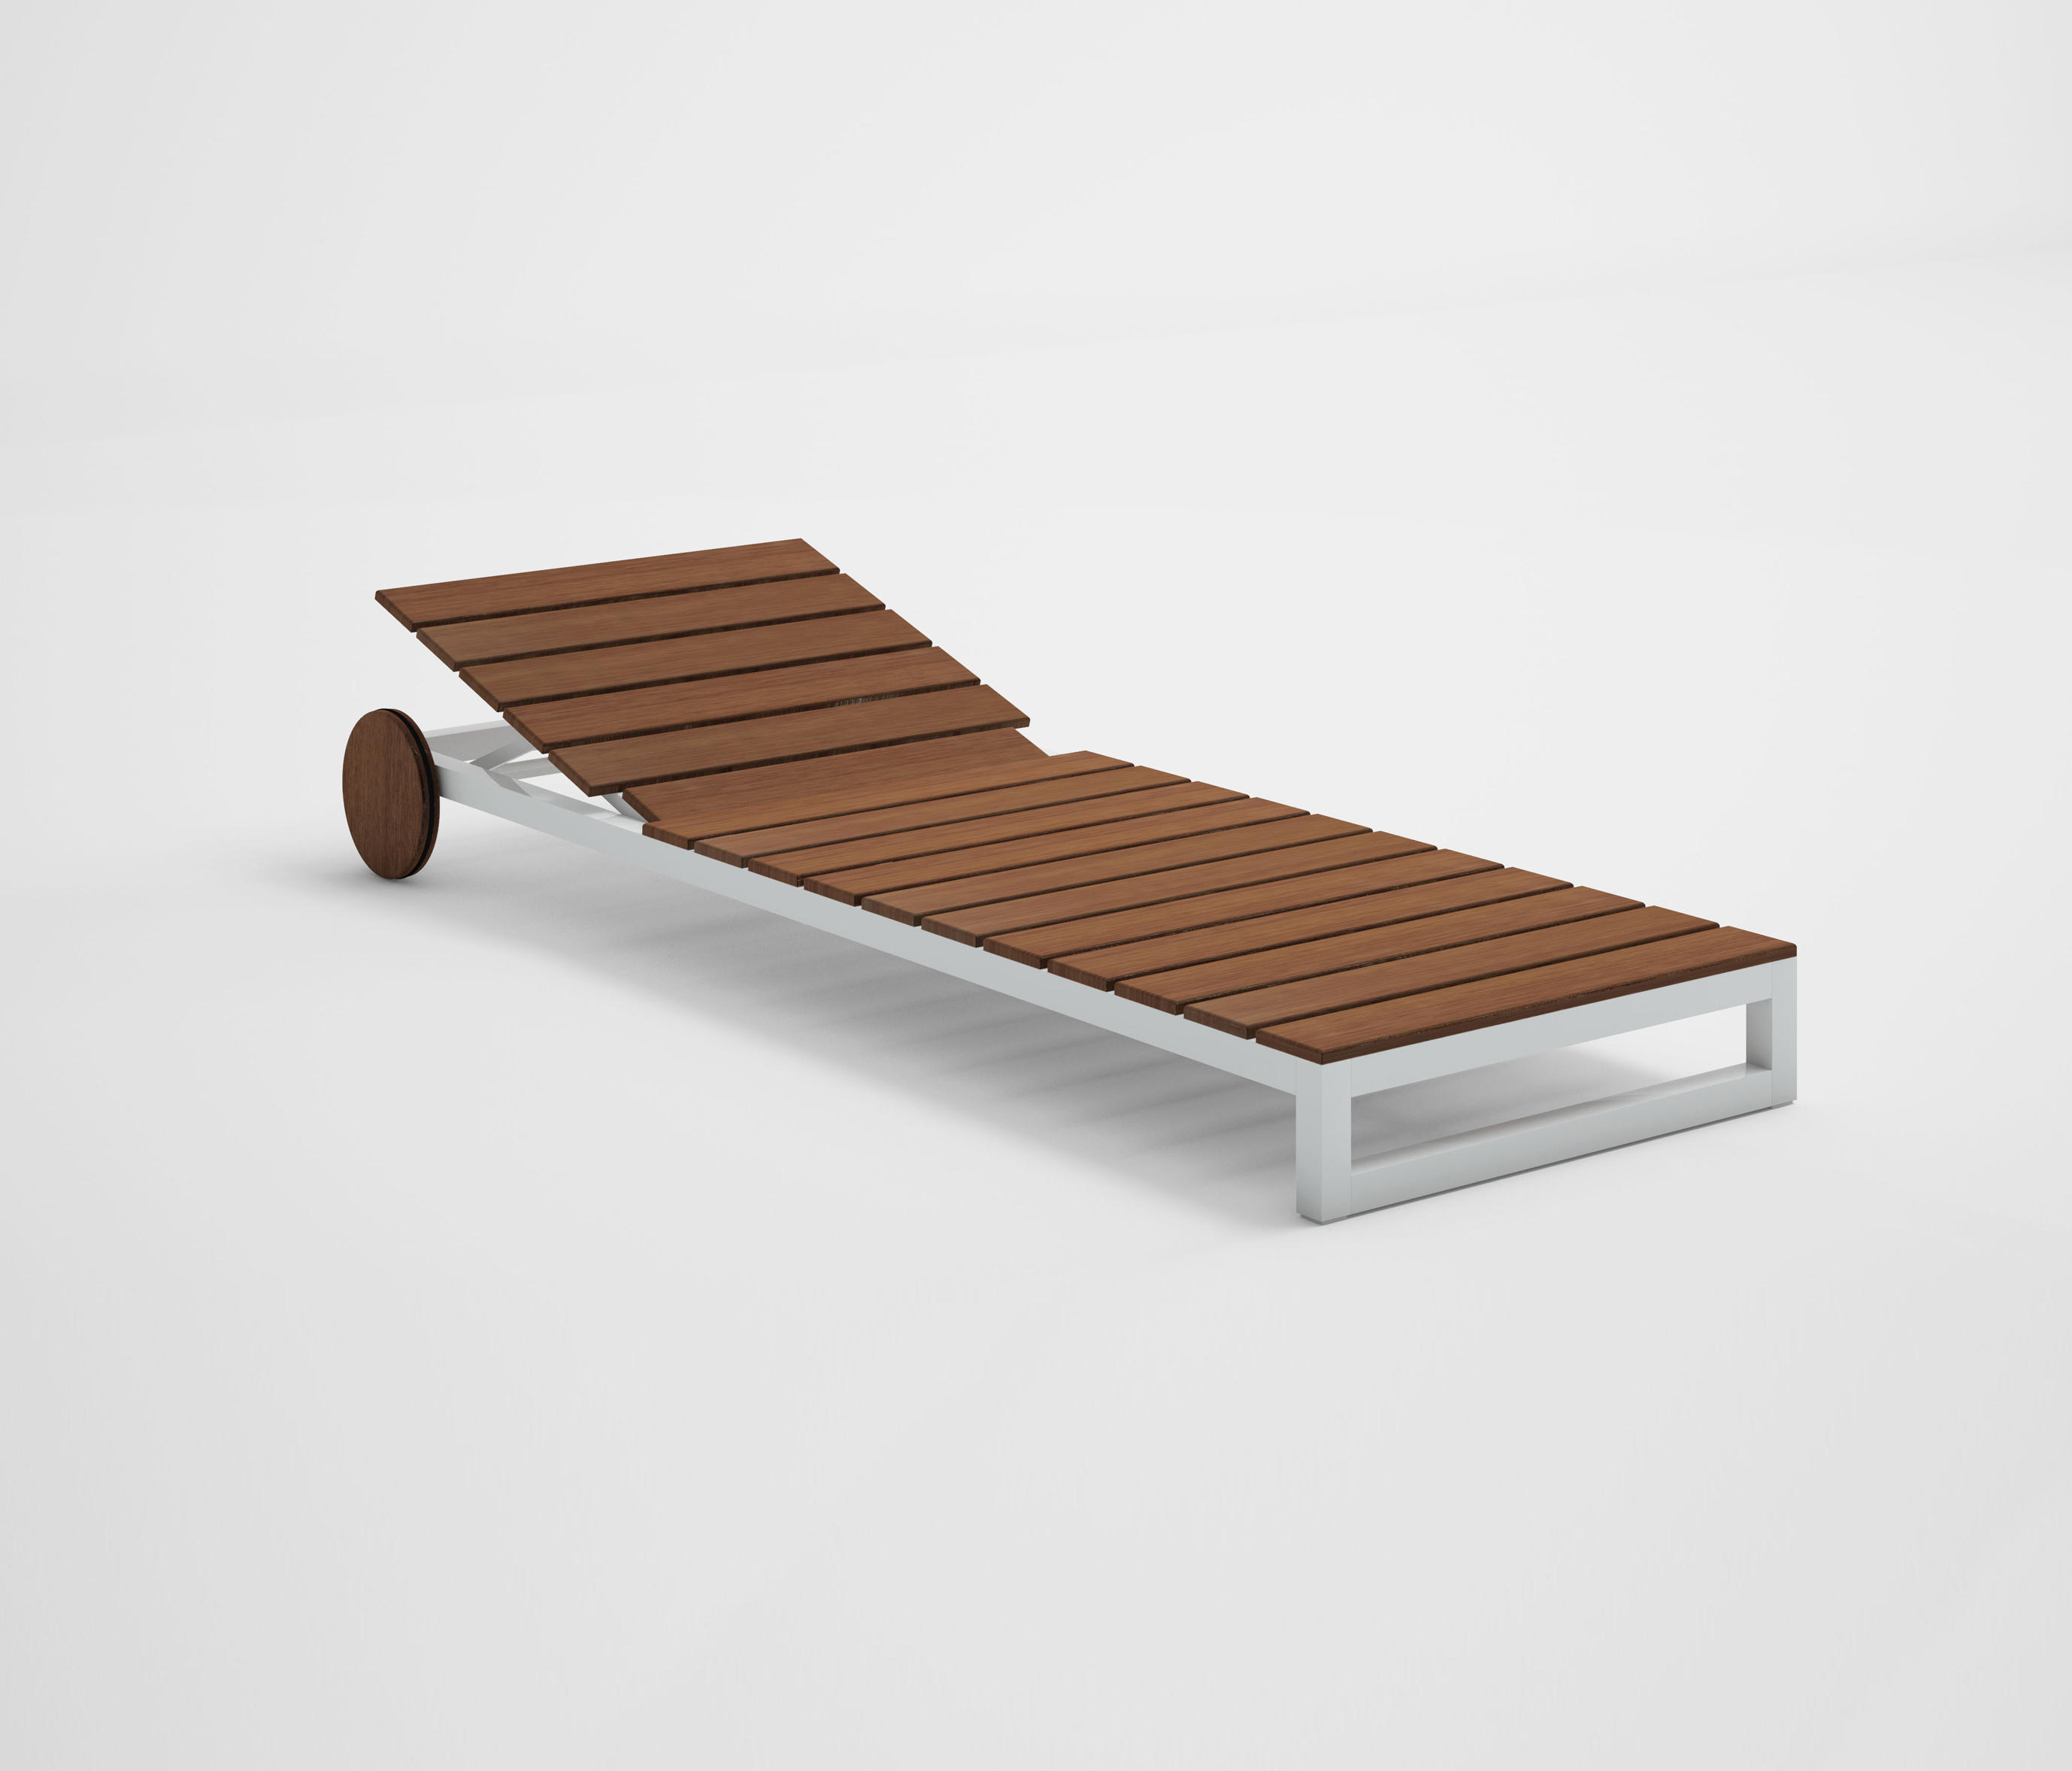 Teak Liege Saler Soft Teak Chaiselongue Sun Loungers From Gandiablasco